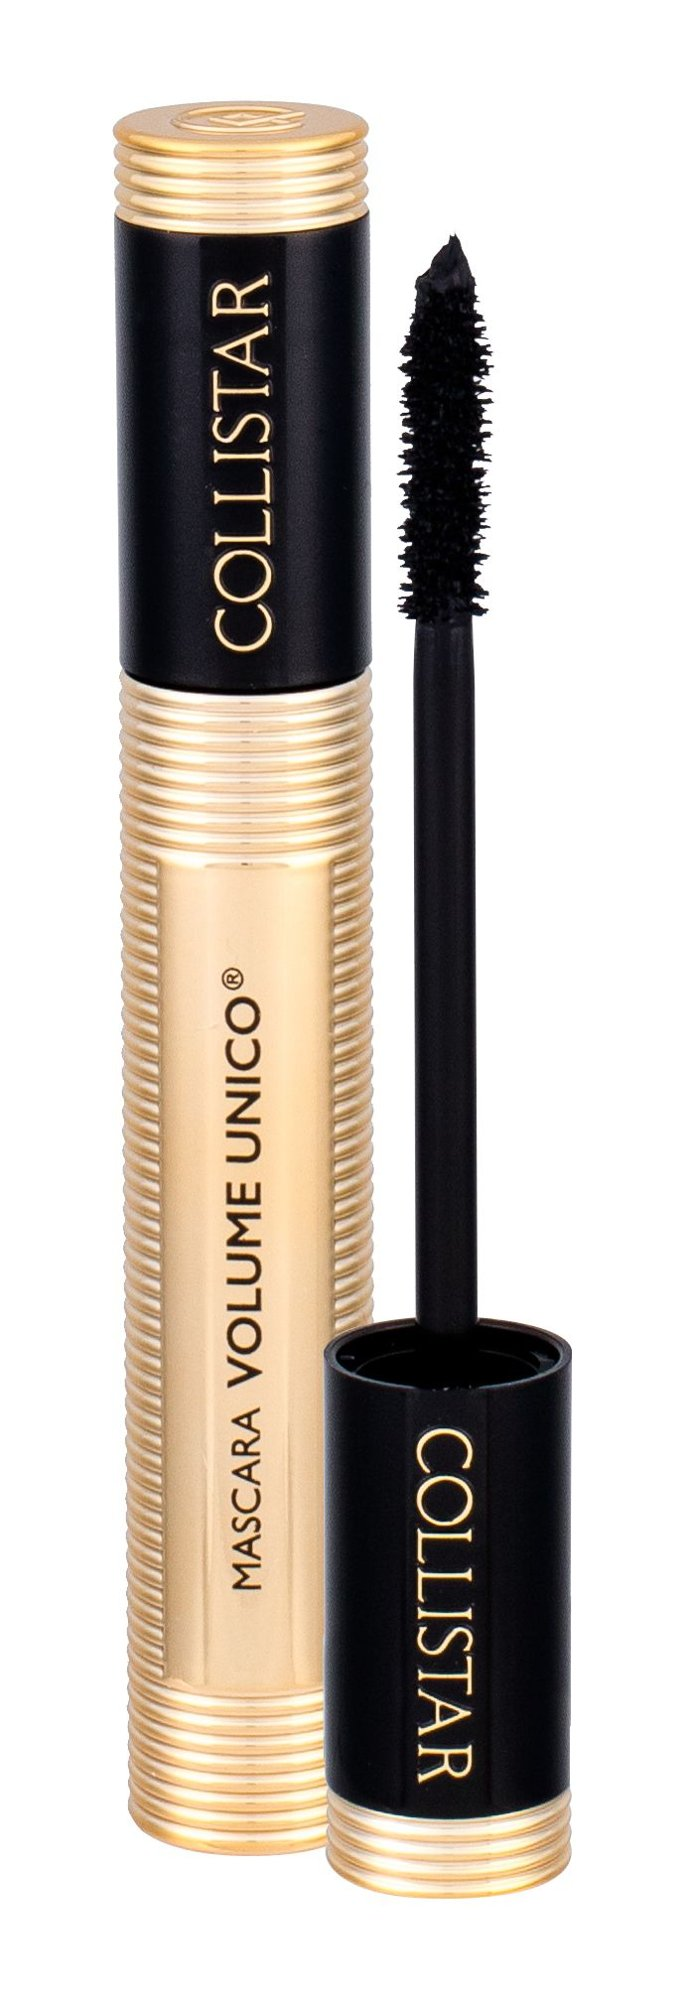 Collistar Volume Unico Cosmetic 13ml Intense Black